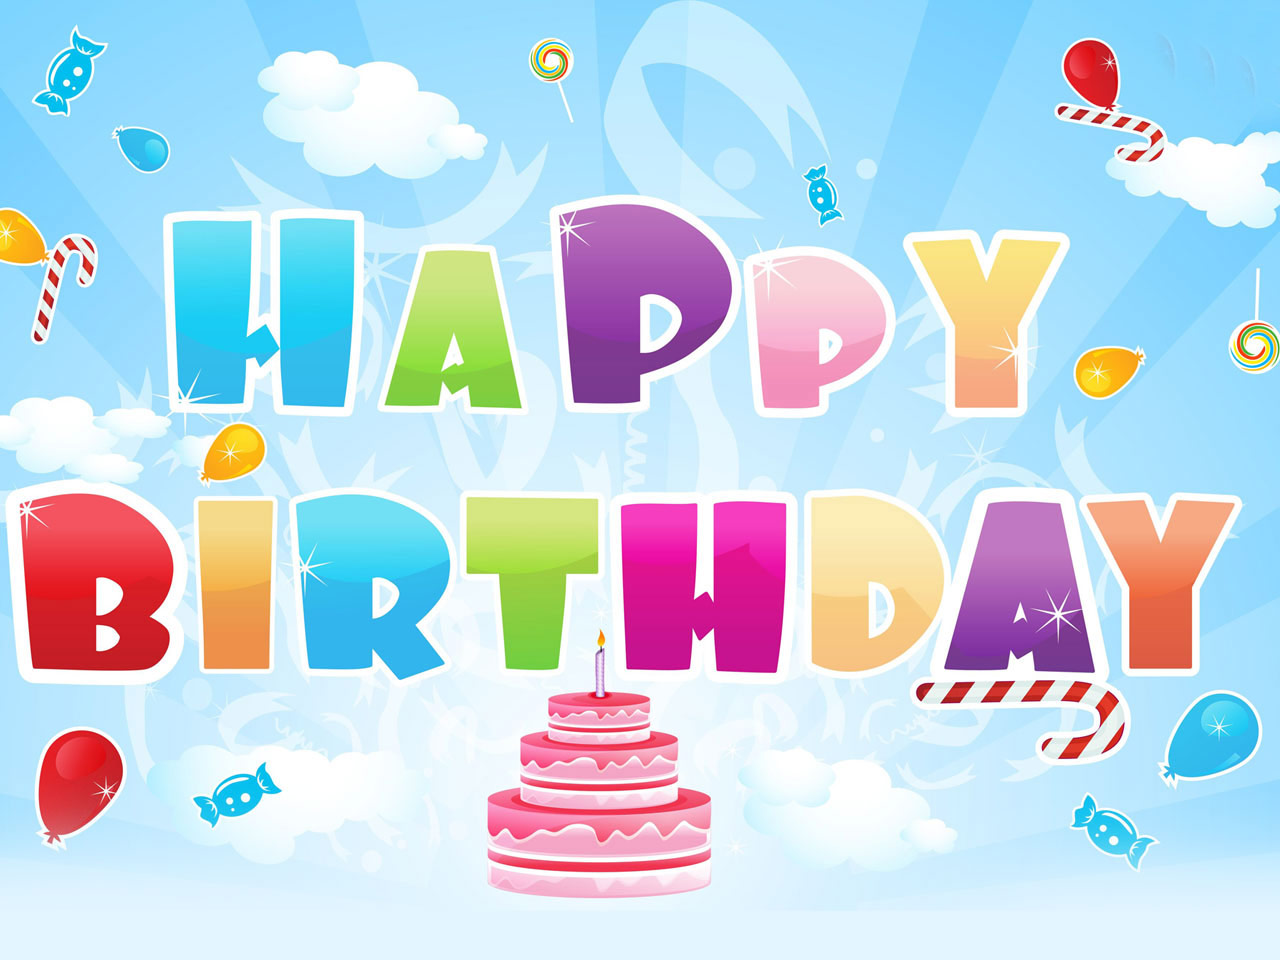 Happy Birthday Animation ECards Share Free Greeting Postcards Images And Video